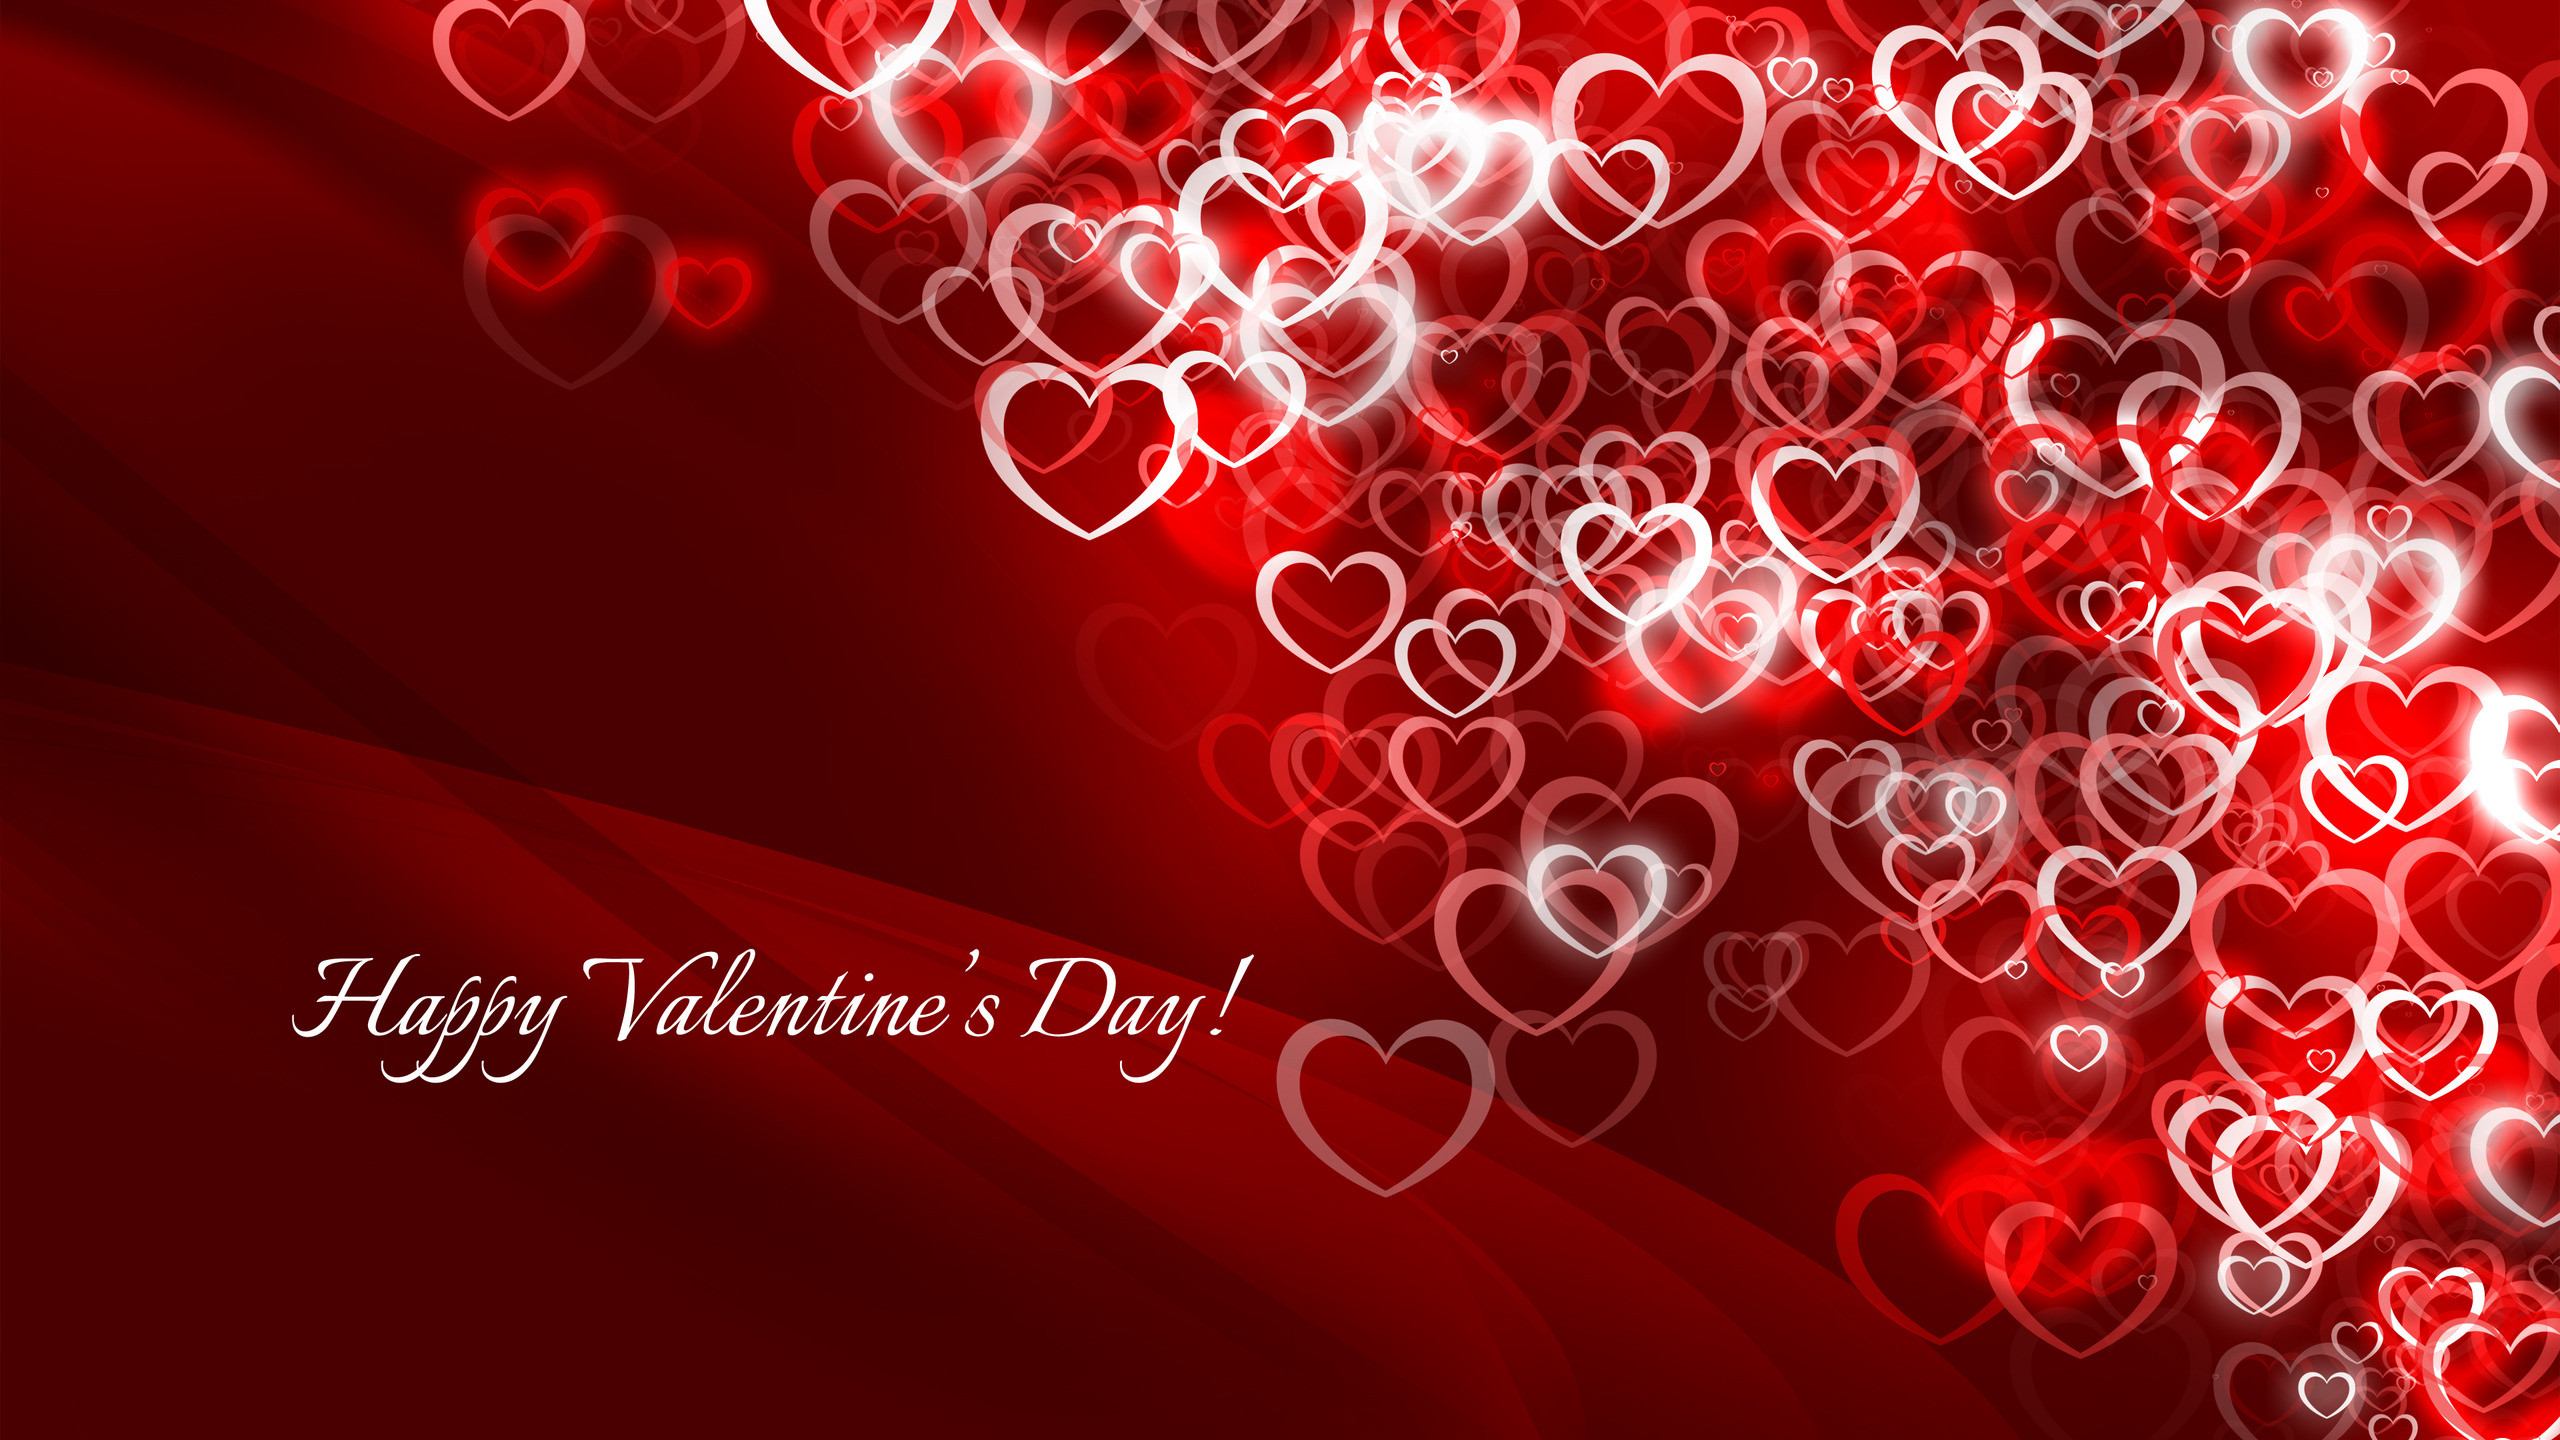 67 Wallpapers And Screensavers Valentine On Wallpapersafari